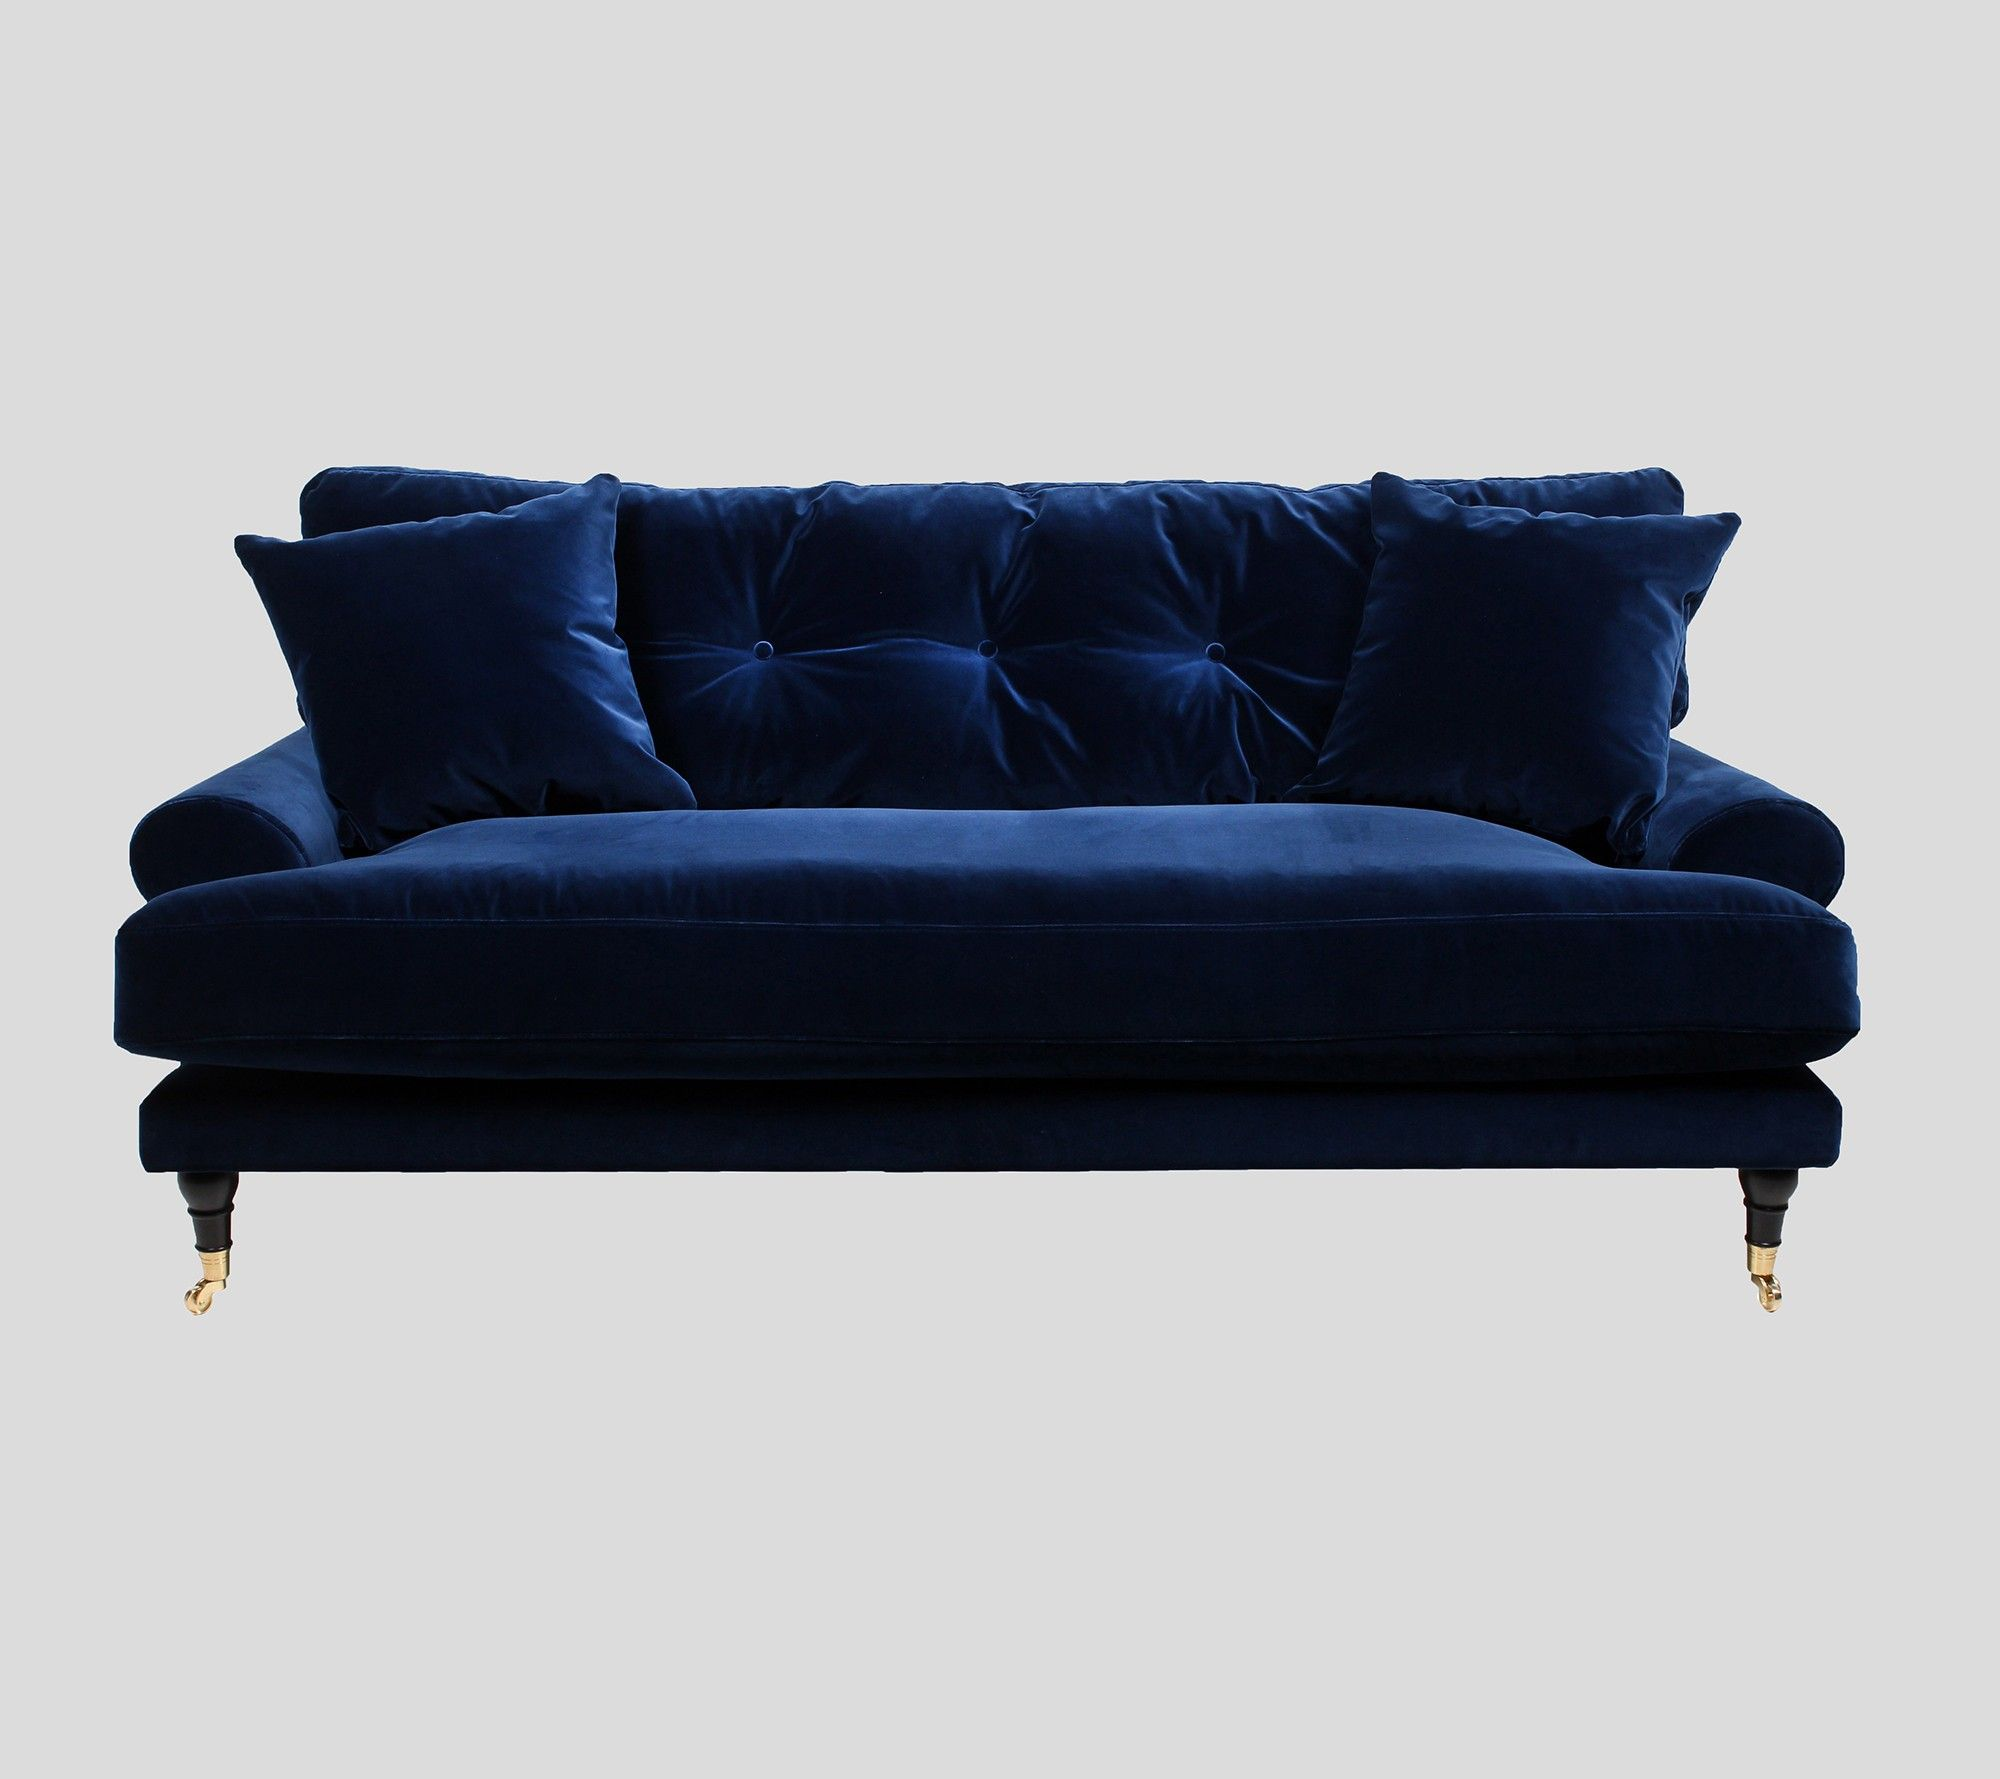 Midnight Blue Sofa Chelsea Corner Suite With Bed Deep Velvet In Two & Three Seat | Sofas Att ...